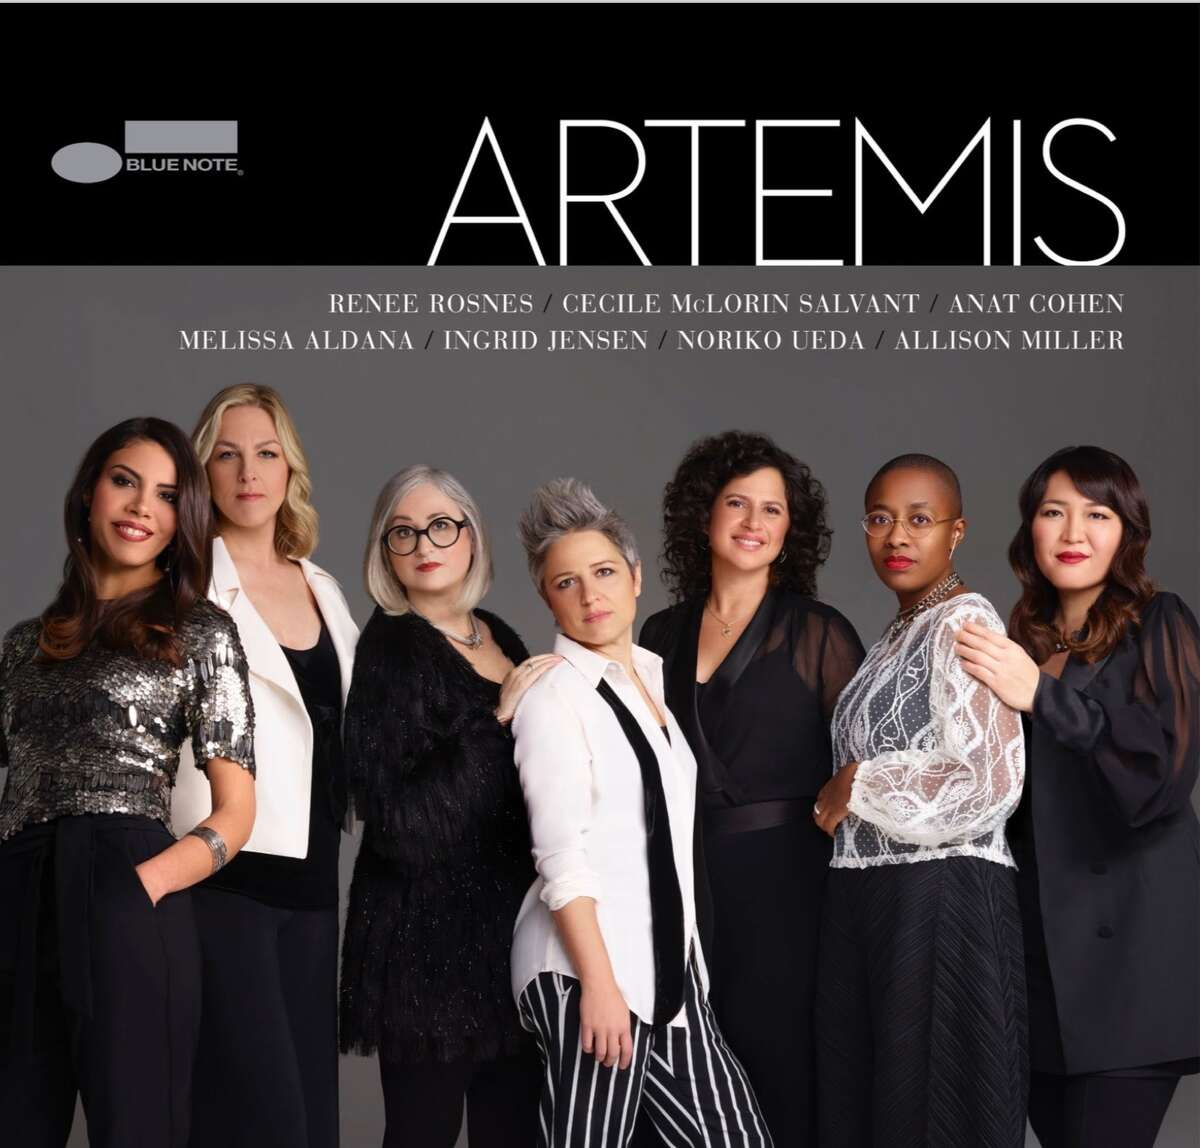 Artemis' first release